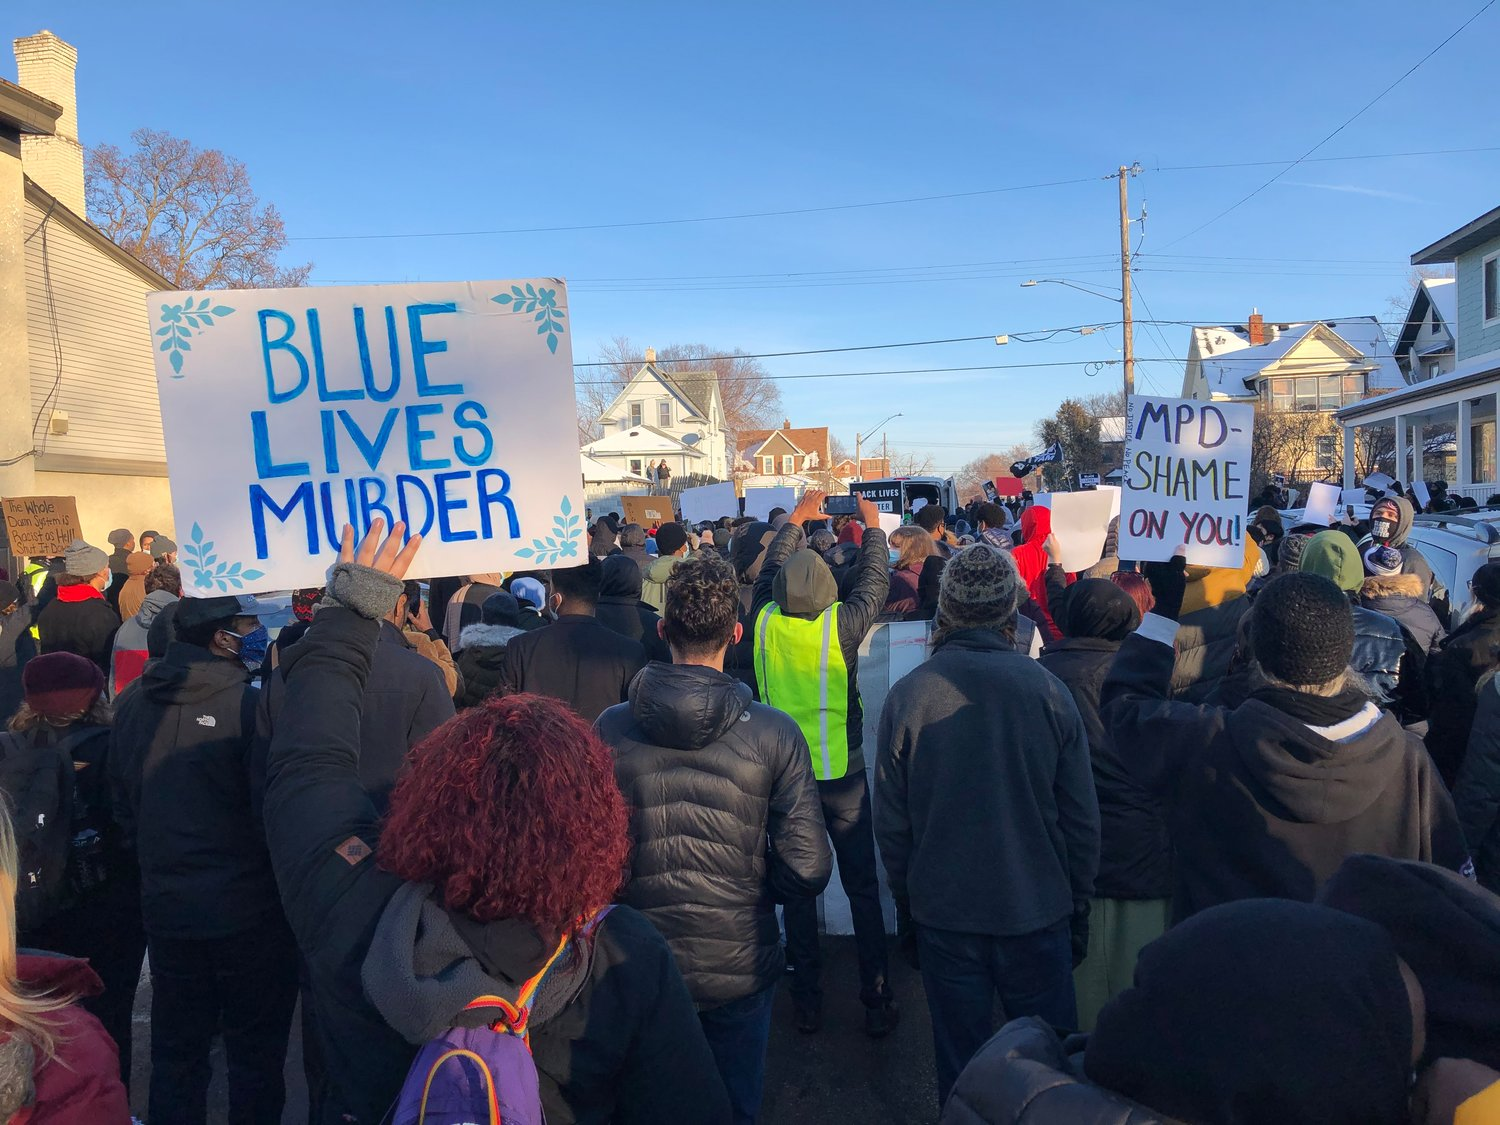 Nearly 1,000 people assembled at the Holiday gas station at 36th and Cedar Ave. on Jan. 3, 2021 to protest the fatal shooting by police of Dolal Idd there on Dec. 30, 2020. Demonstrators marched to E. Lake St. then back on Bloomington Ave., demanding justice and transparency. (Photo by Jill Boogren)